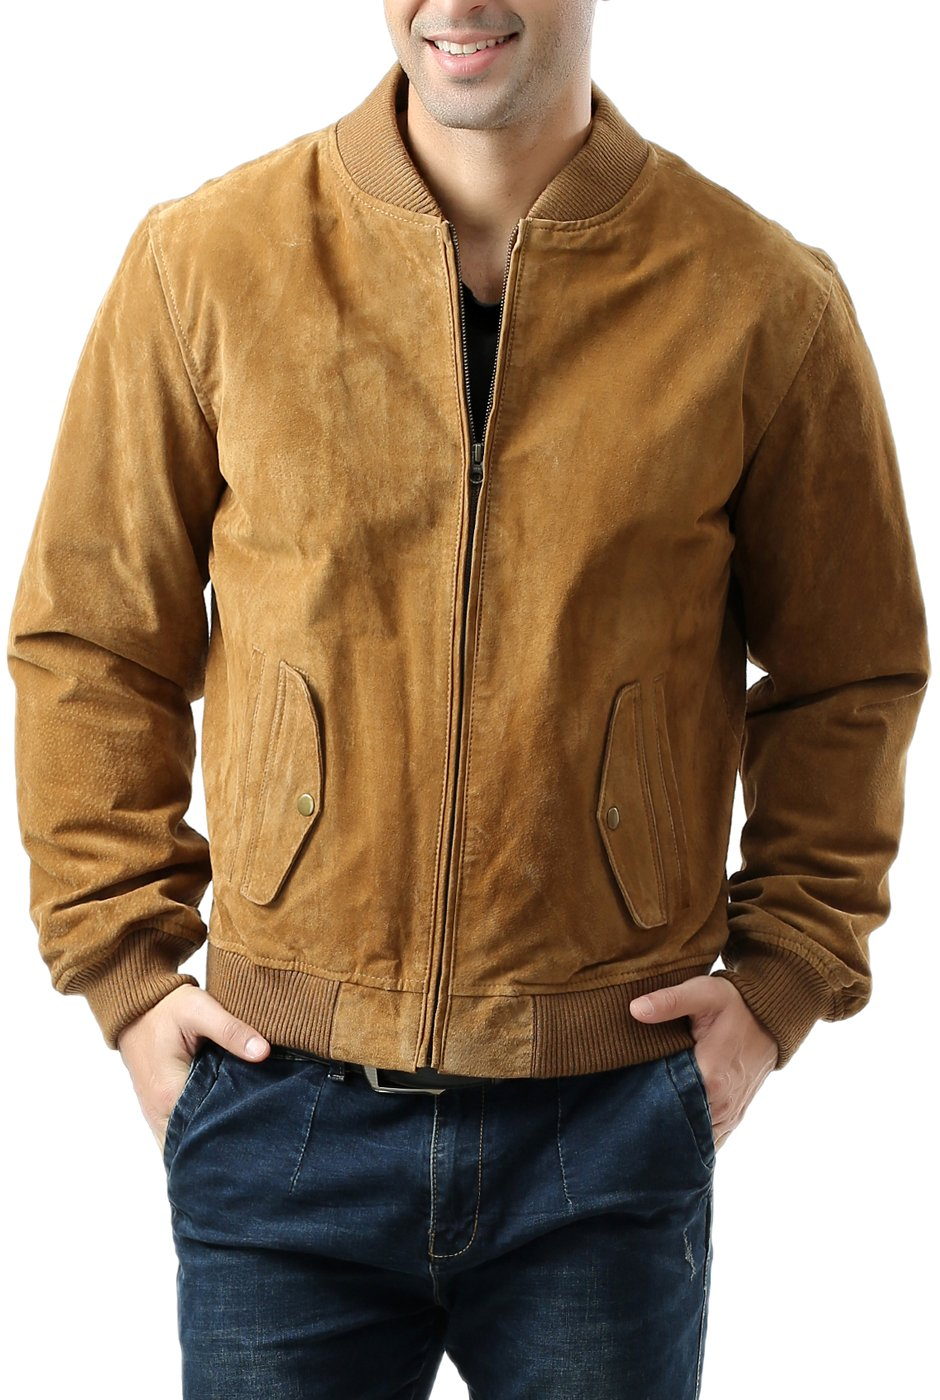 BGSD Men's Suede Leather Baseball Bomber Jacket,Camel,Medium by BGSD